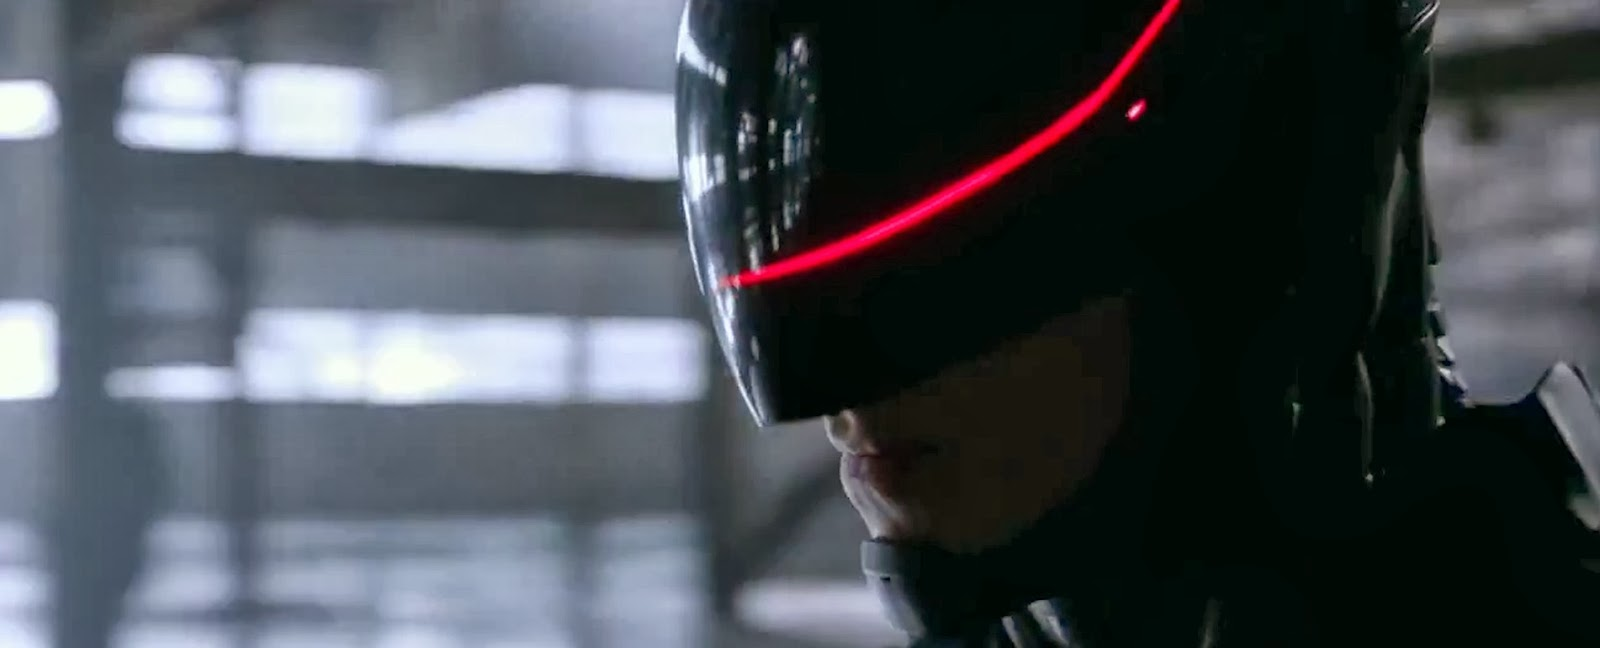 09+new+robocop+red+light+on+visor.jpg